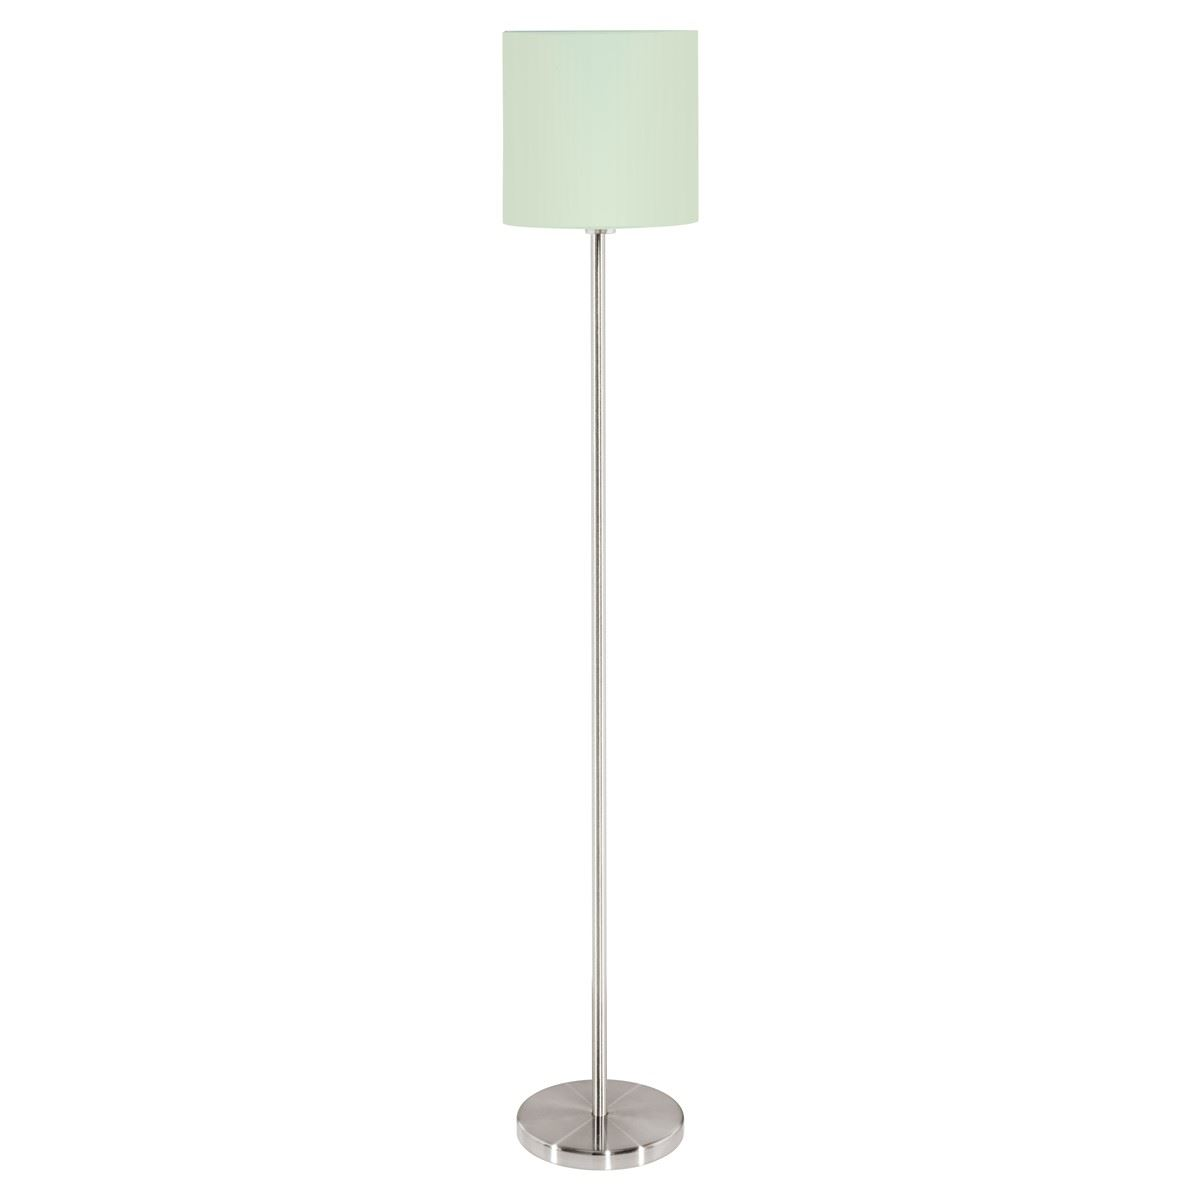 Retro Pastel Light Blue Tripod Floor Lamp Light Green Drum Fabric Shade Led Bulb